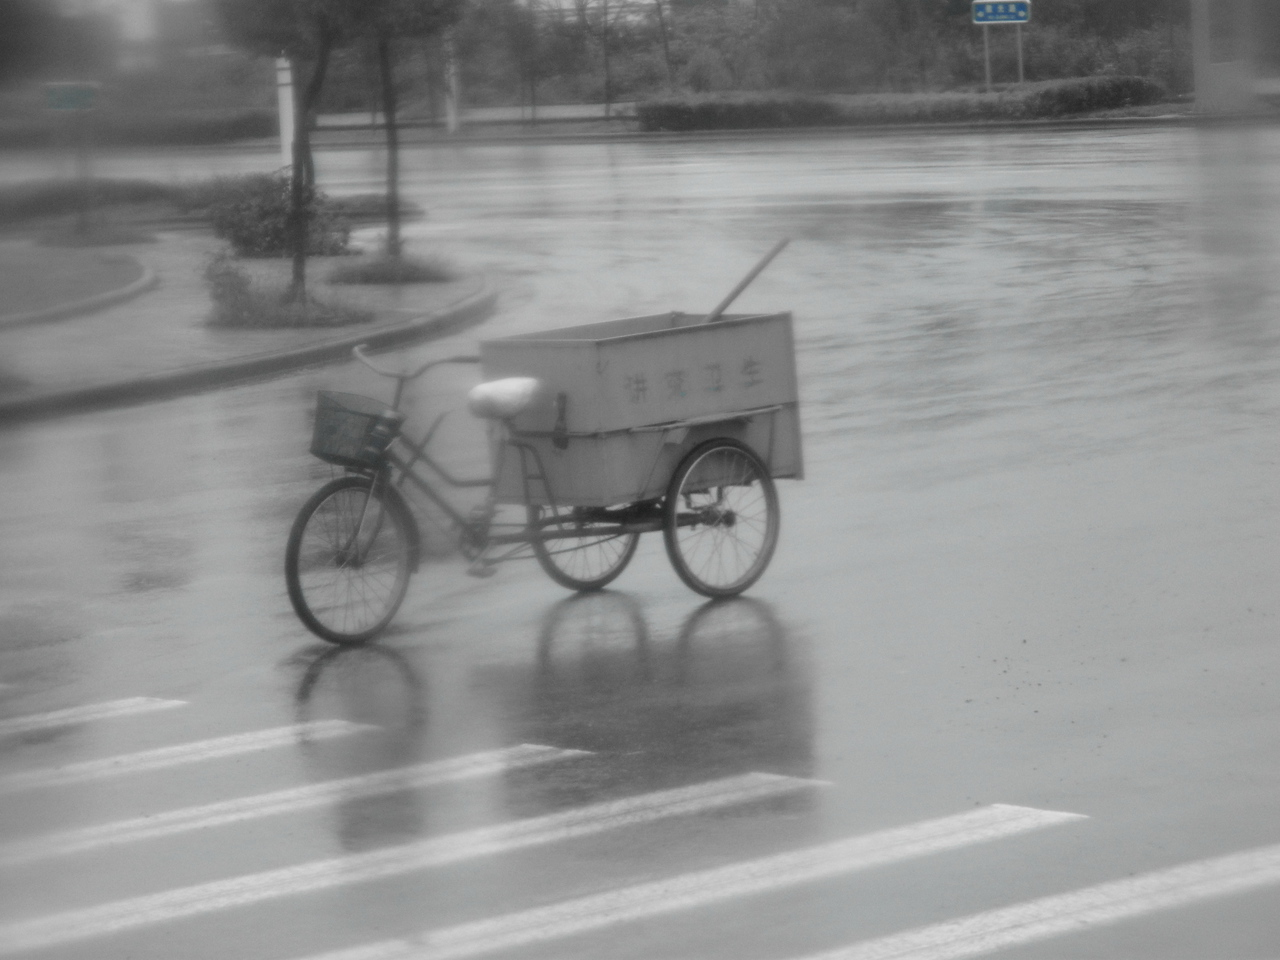 Abandoned Tricycle, Rainy Day, Huangshan, China